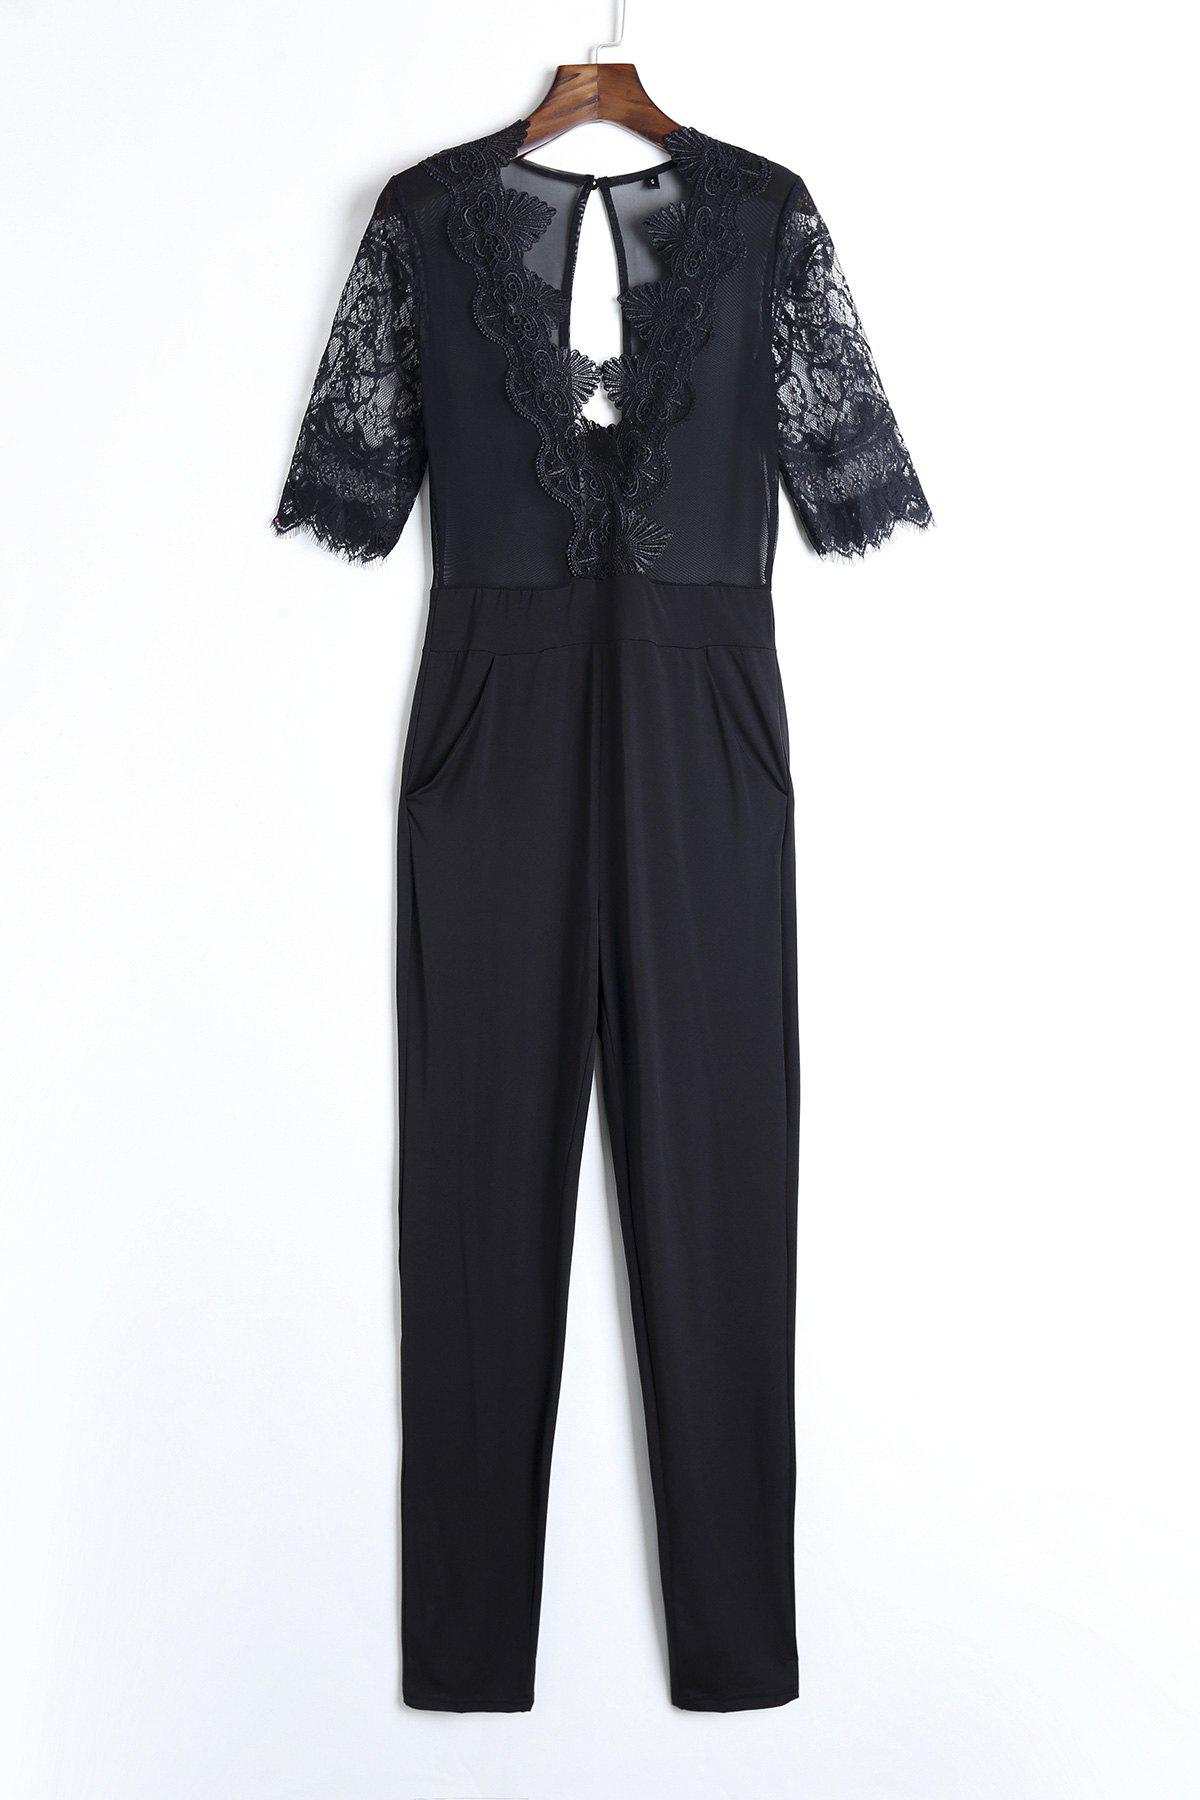 Sexy Plunging Neck Half Sleeve See-Through Lace Splicing Women's Black Jumpsuit